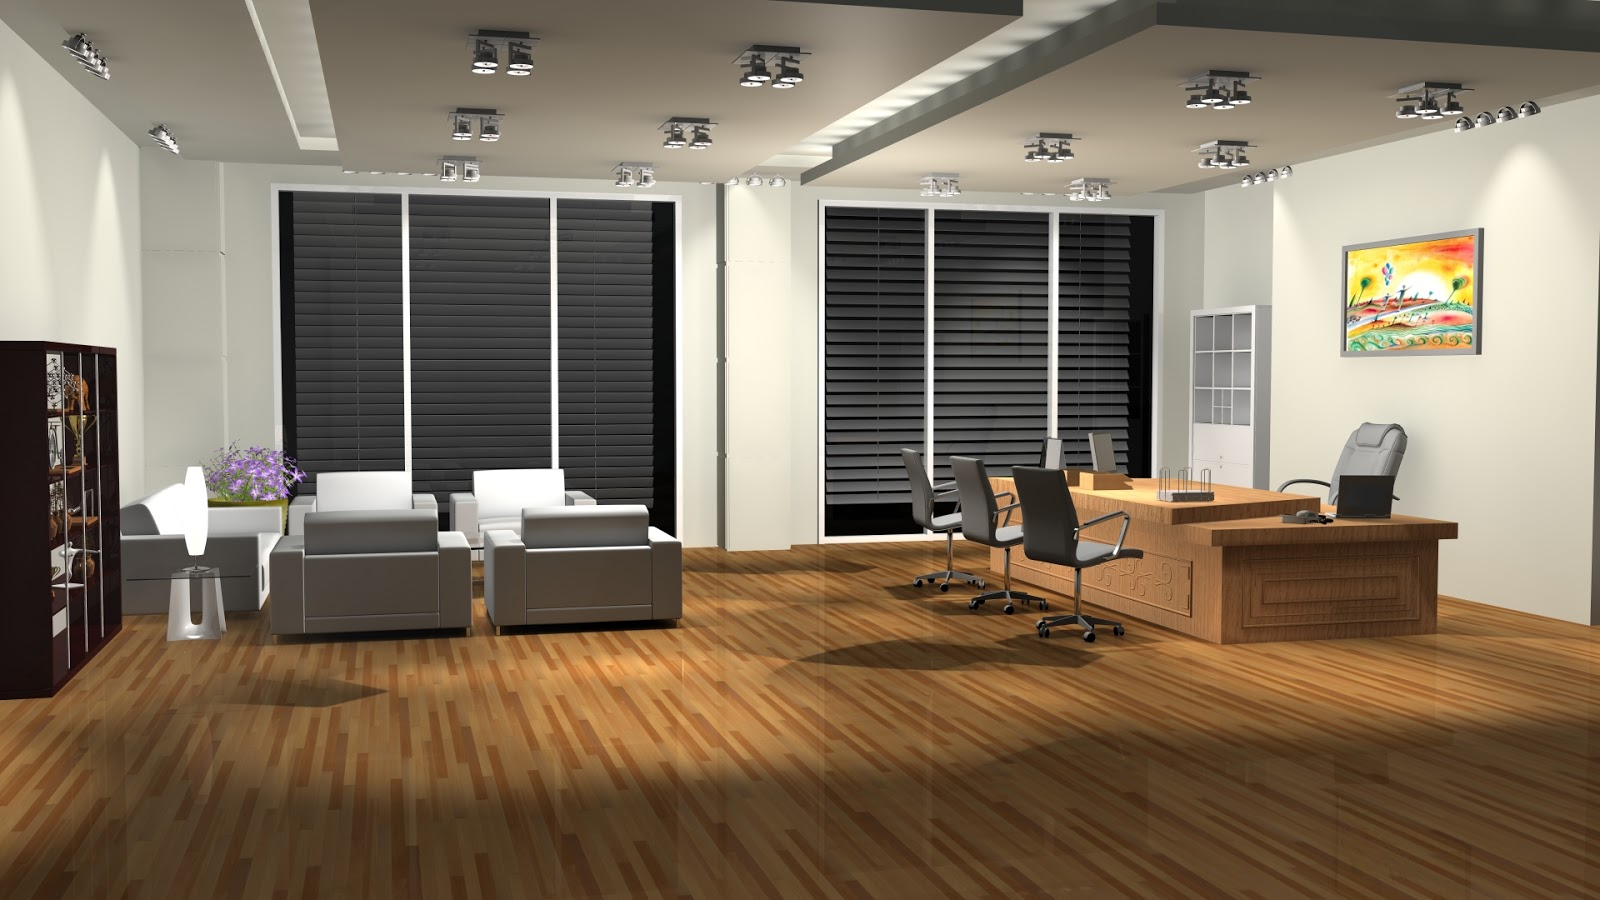 Sajid designs office room 3d interior design 3ds max for 3d max interior design